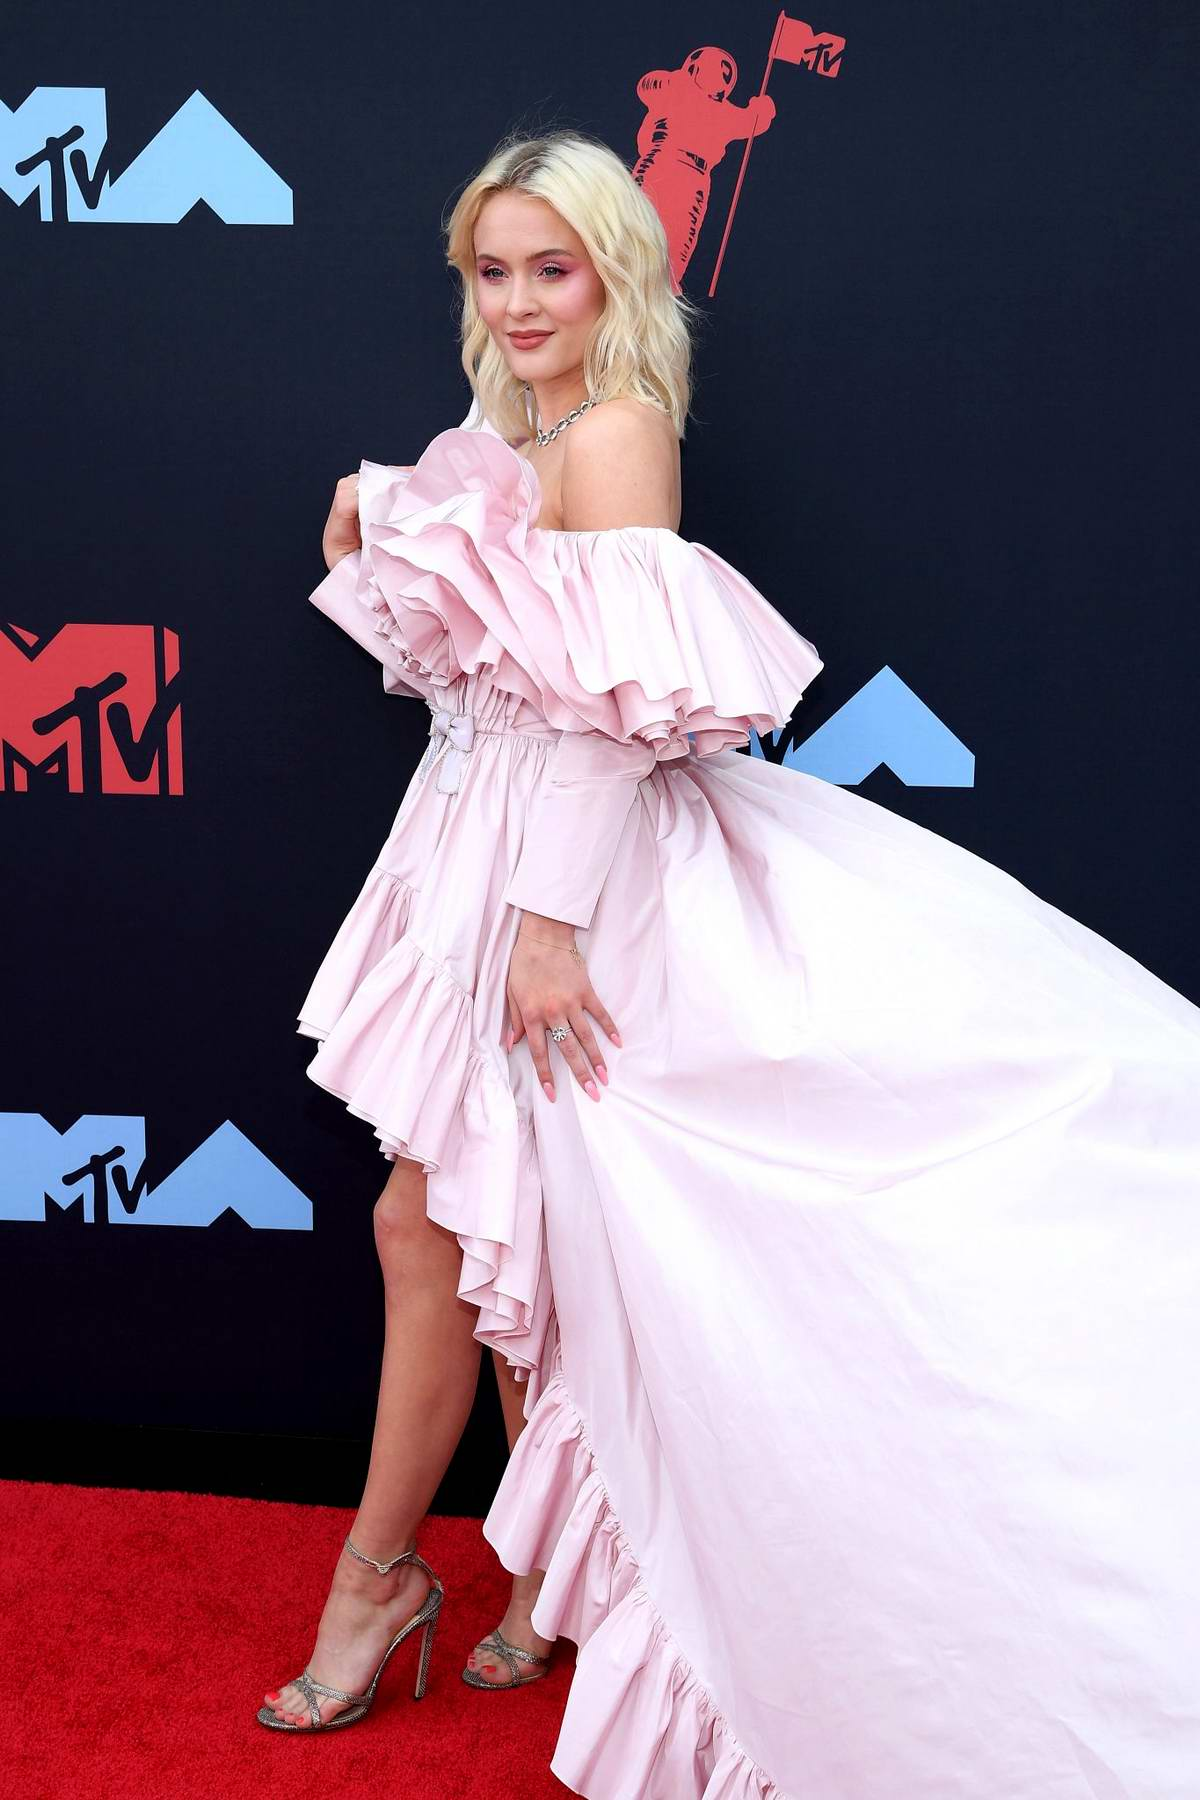 Zara Larsson attends the 2019 MTV Video Music Awards at Prudential Center in Newark, New Jersey